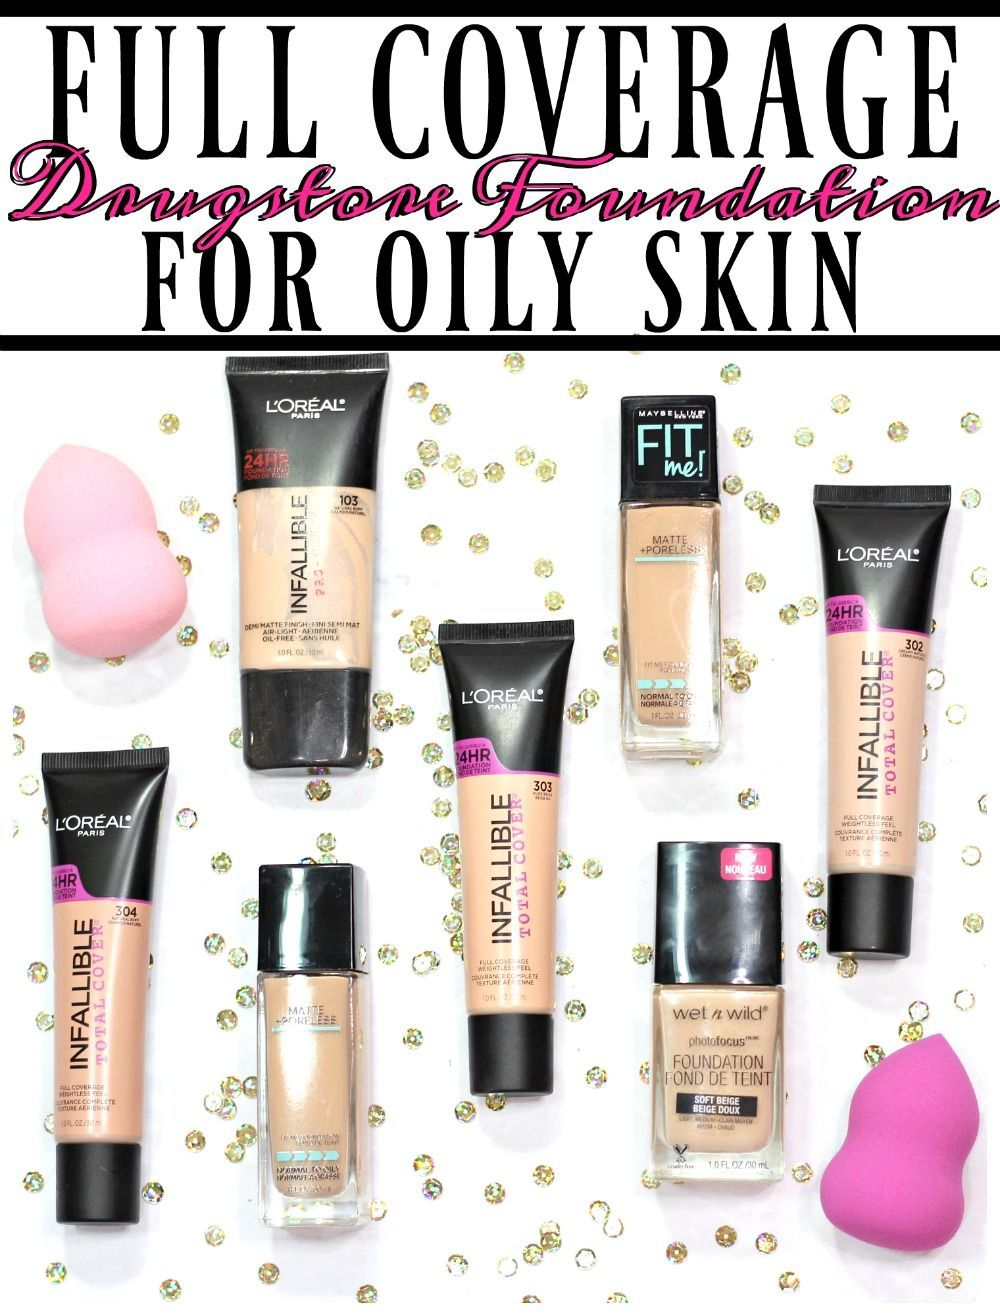 Pin by Charity Baker on Makeup in 2020 Oily skin makeup